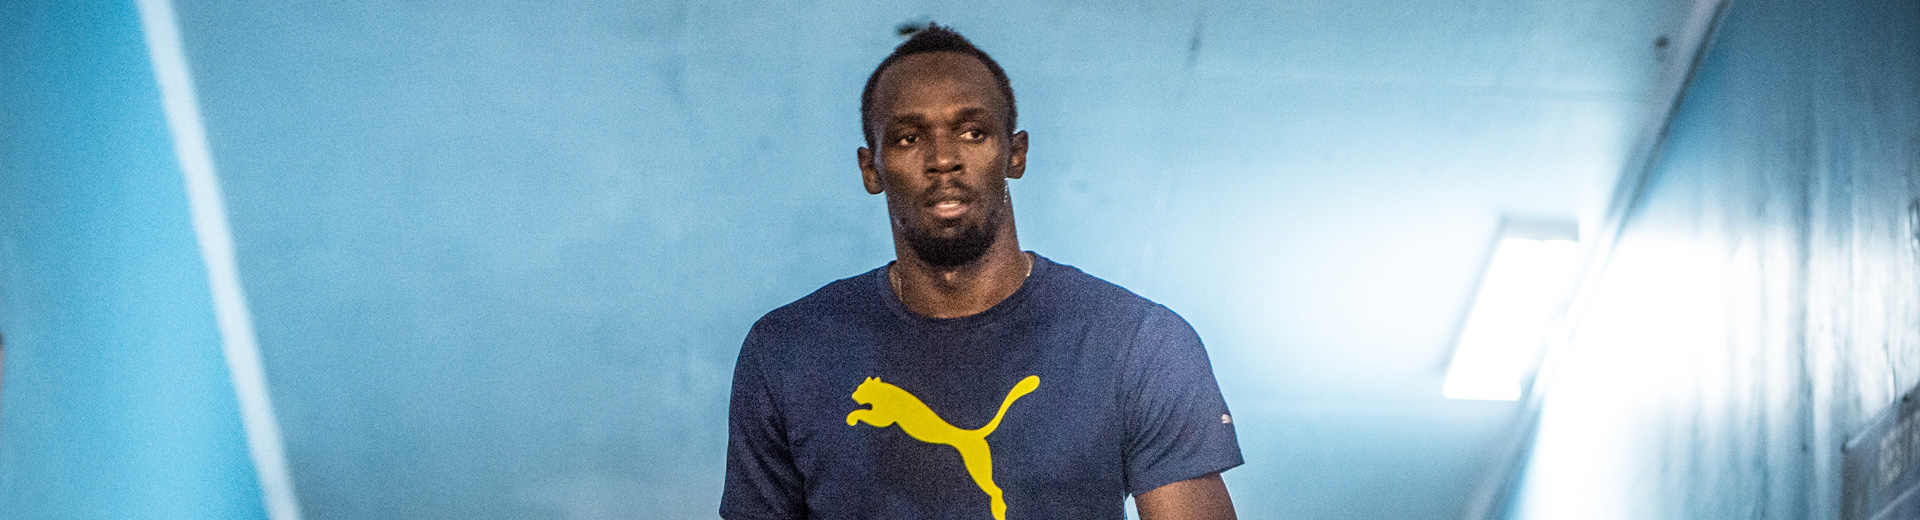 5 Movie superheroes Usain Bolt could Beat (& how)